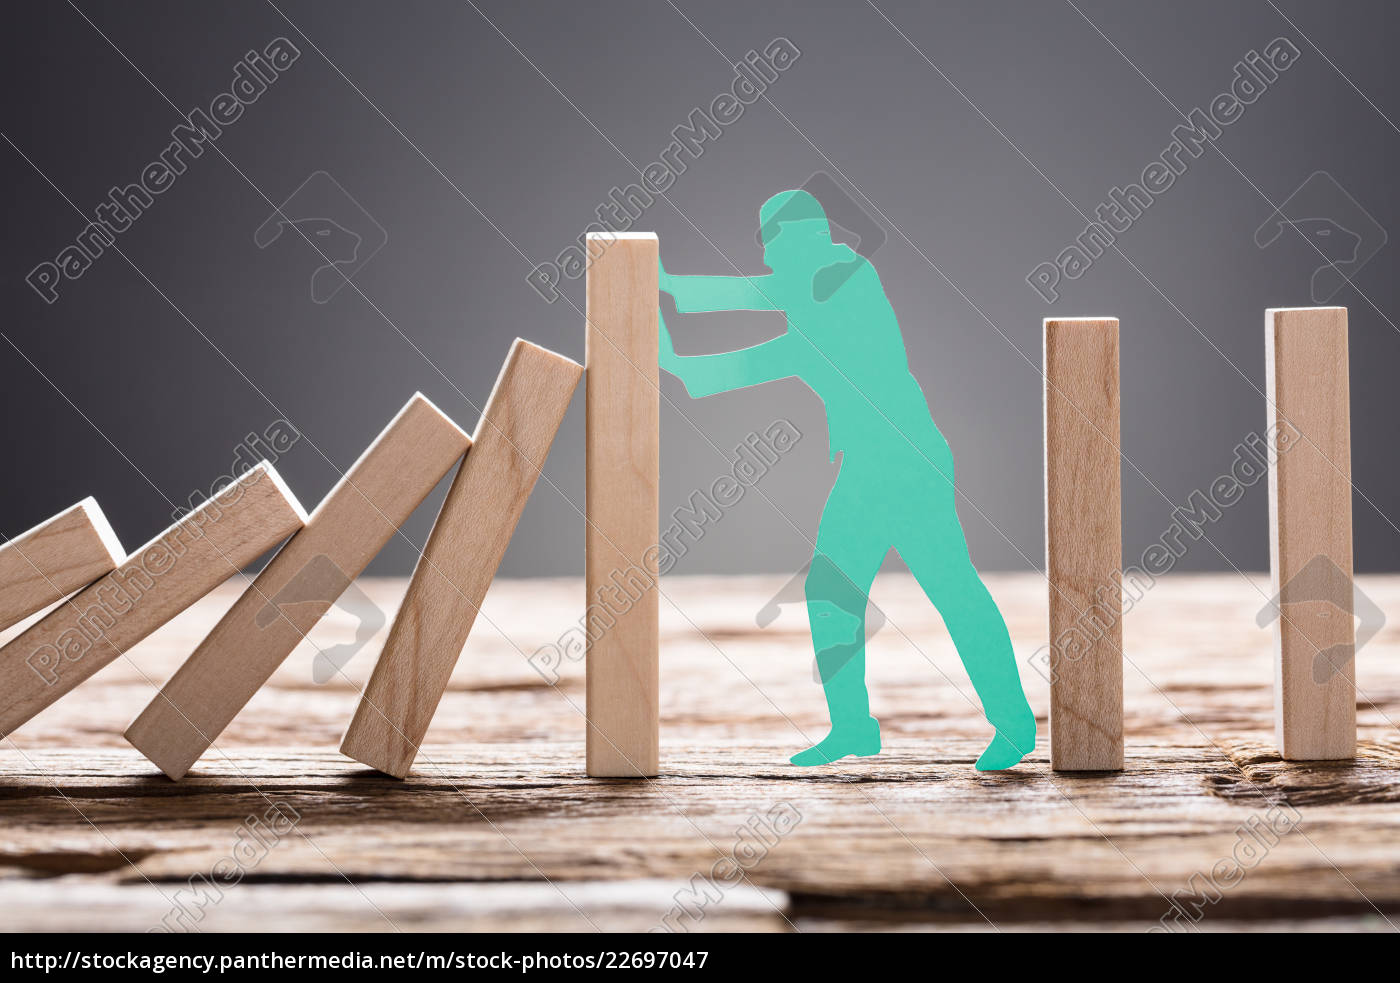 green, paper, man, stopping, wooden, domino - 22697047